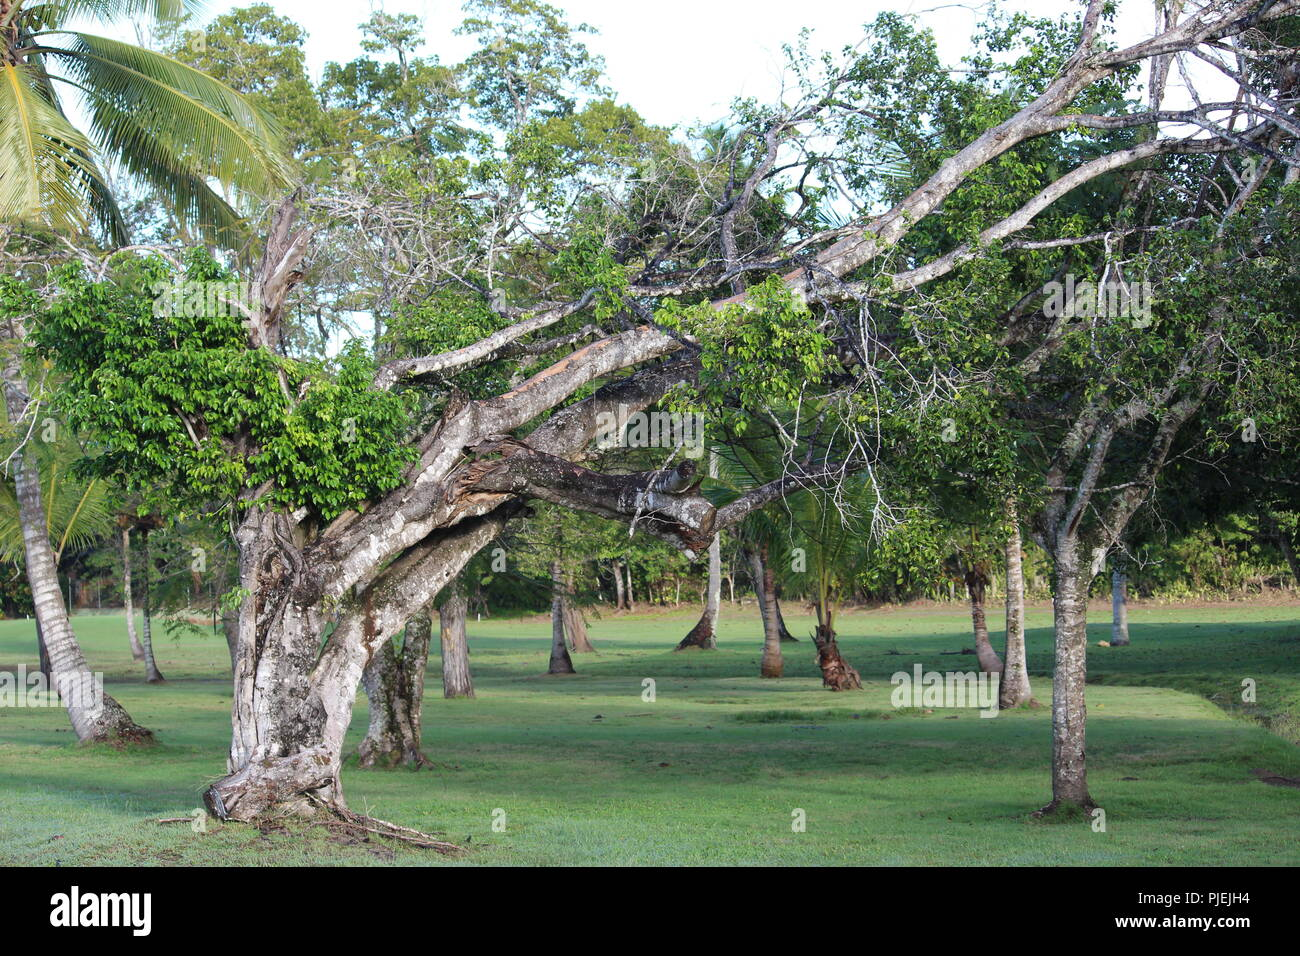 Oddly shaped tree off the 13th fairway at Playa Dorada golf course - Stock Image